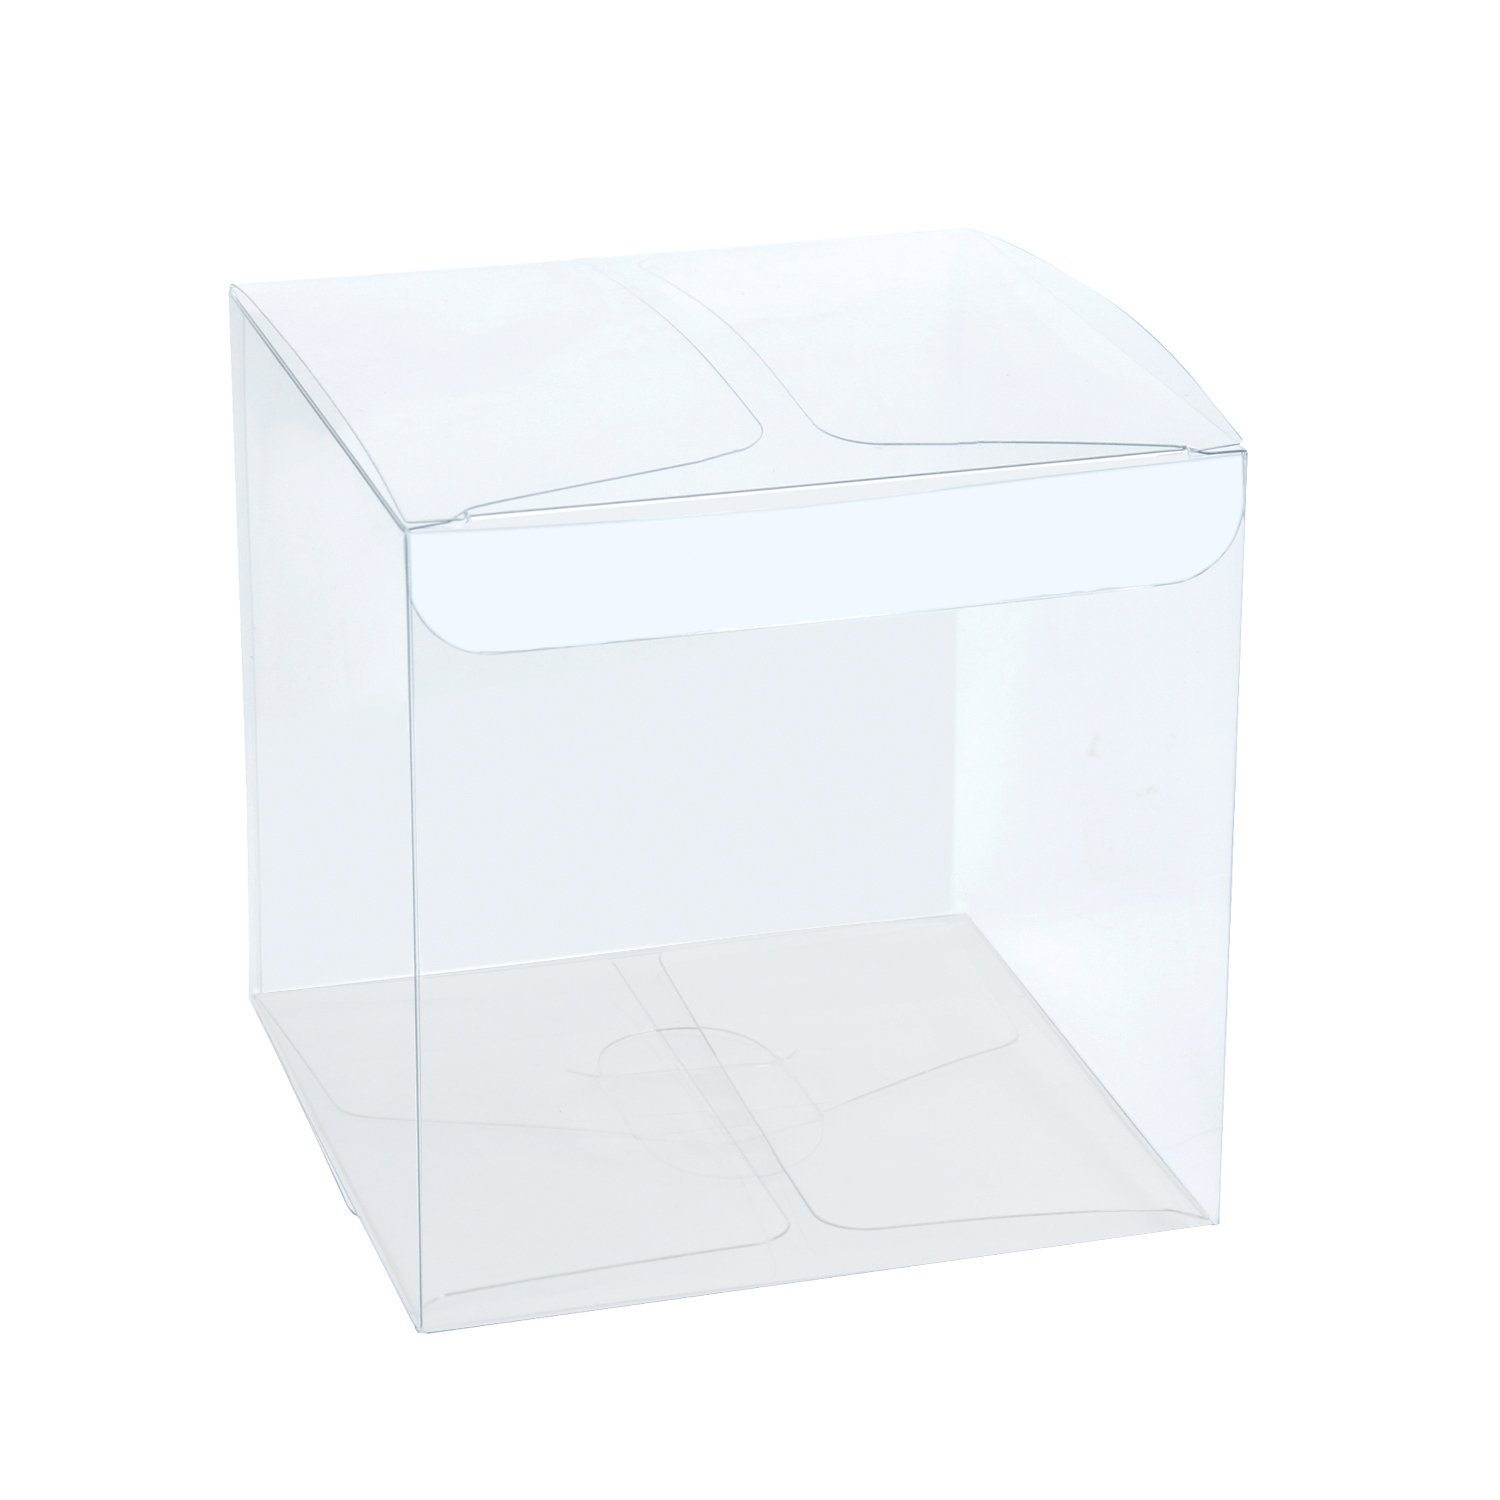 "LaRibbons 30Pcs PET Transparent Boxes, Candy Box, Clear Gift Boxes for Wedding, Party and Baby Shower Favors, 3"" L x 3"" W x 3"" H"